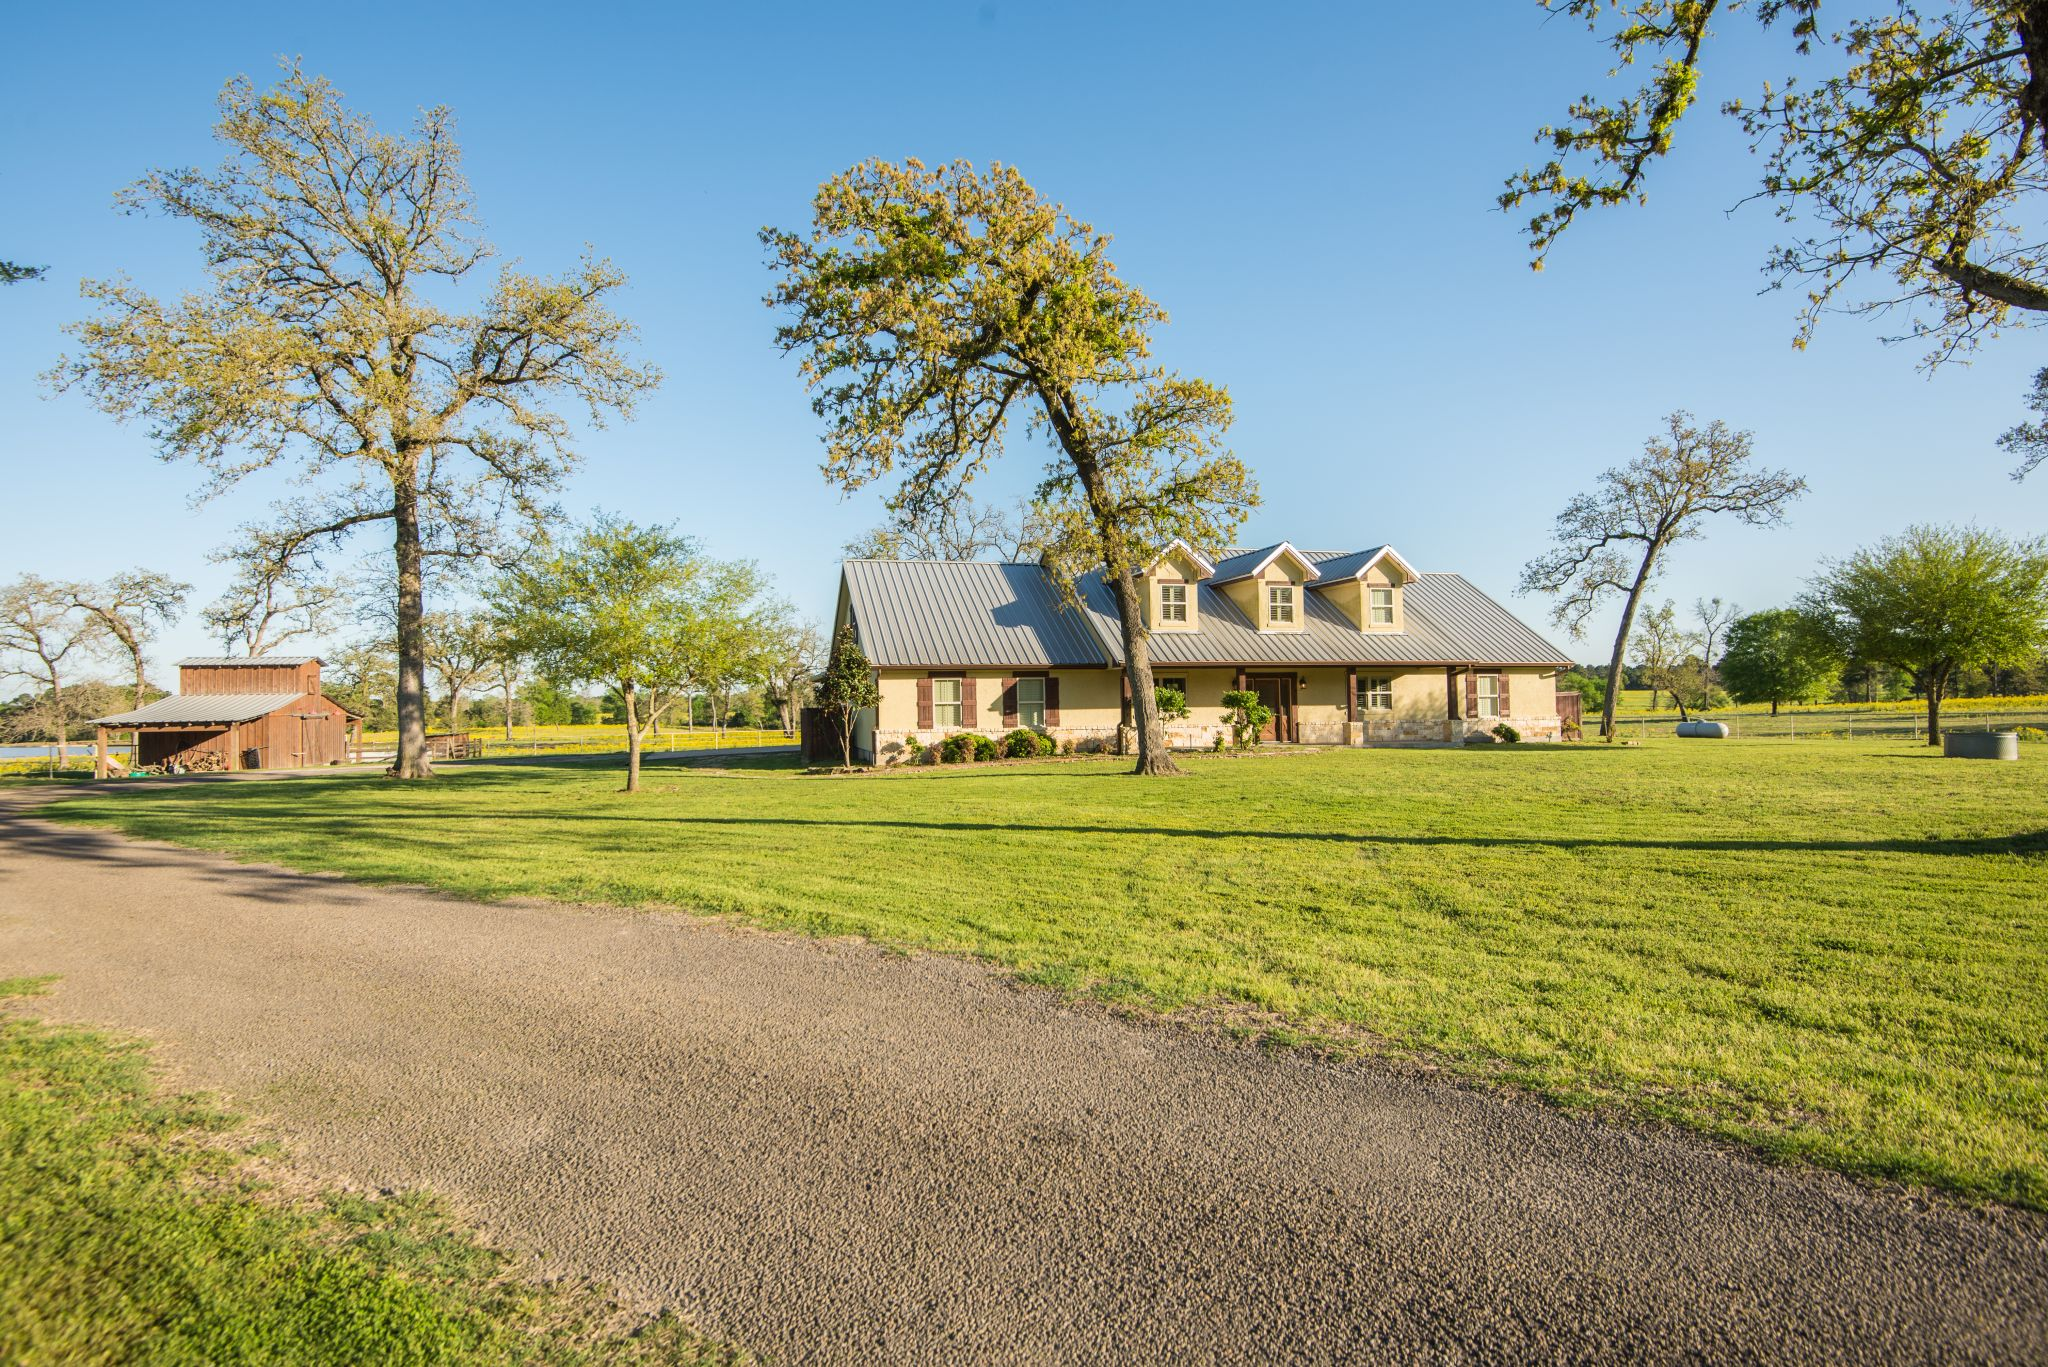 Farmhouse For Sale In Texas Saloon Private Lake And A Personal Peach Orchard All Come With